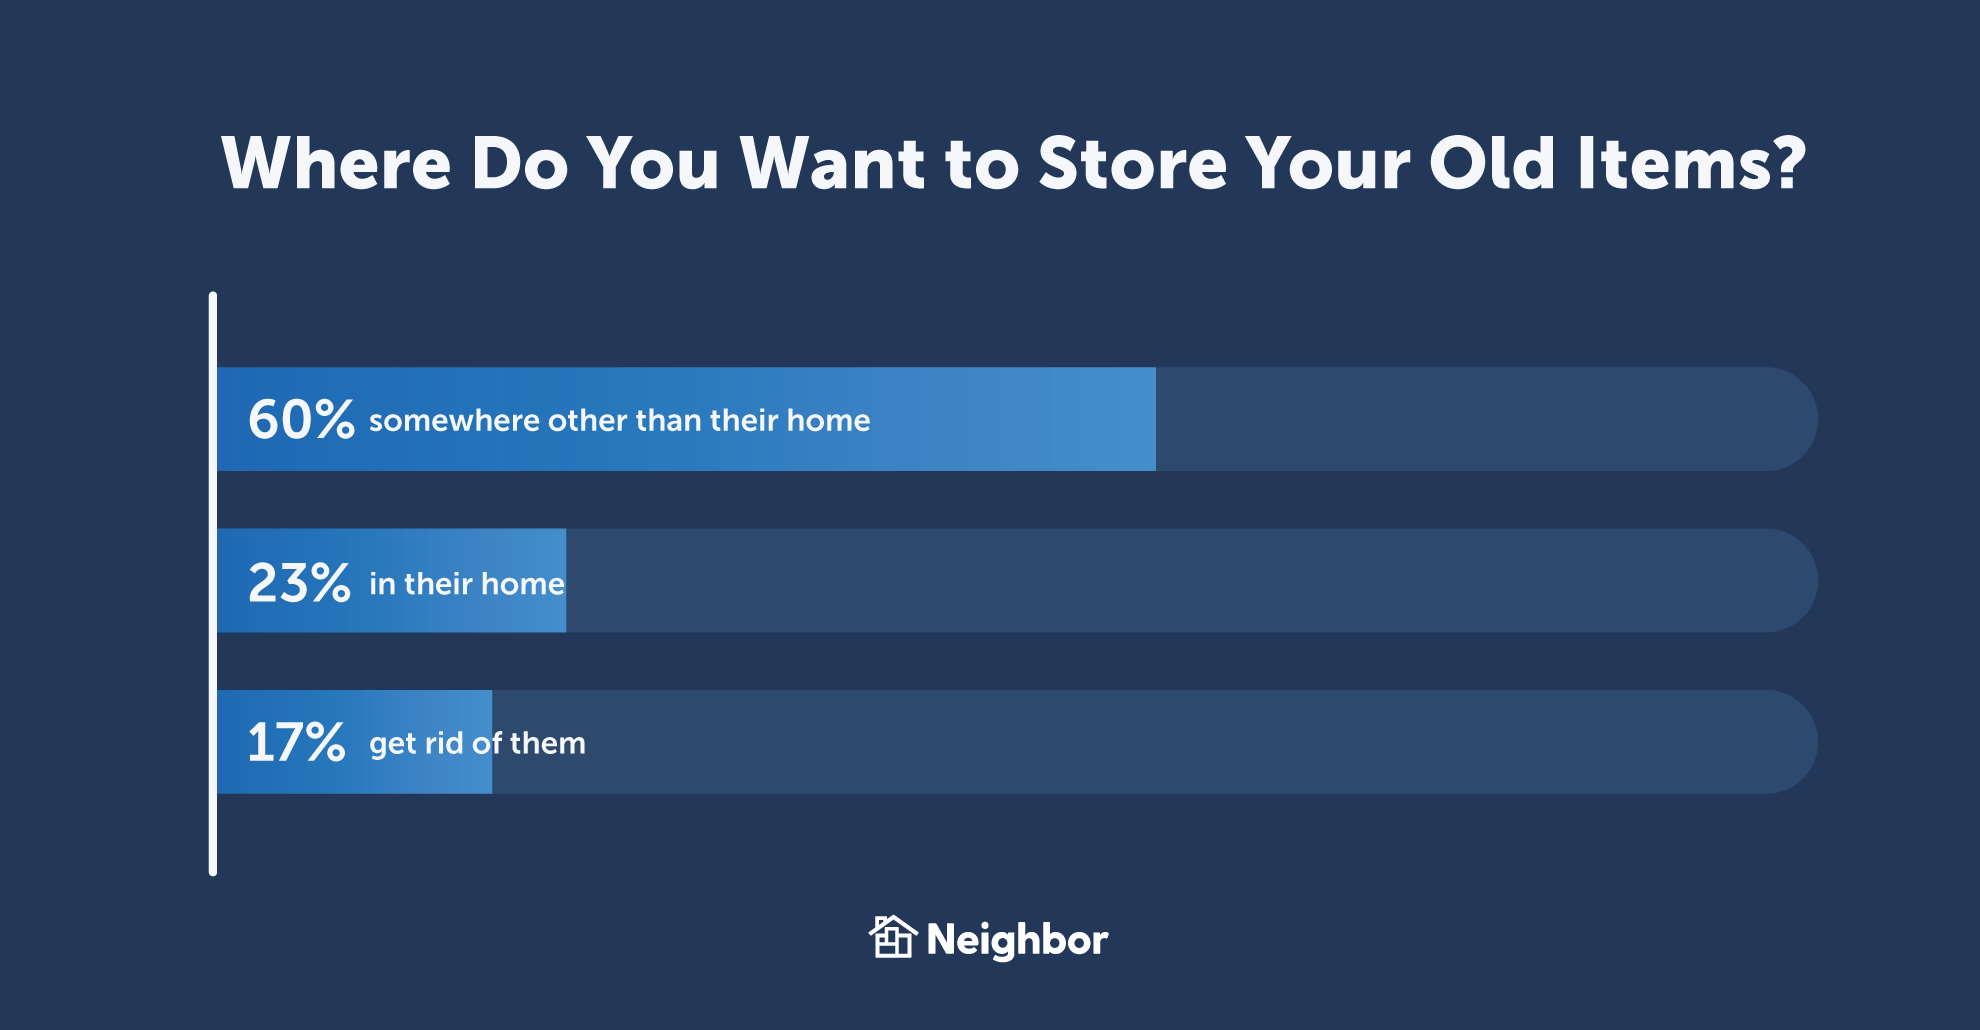 60% of People Want to Store Their Things Outside of Their Home